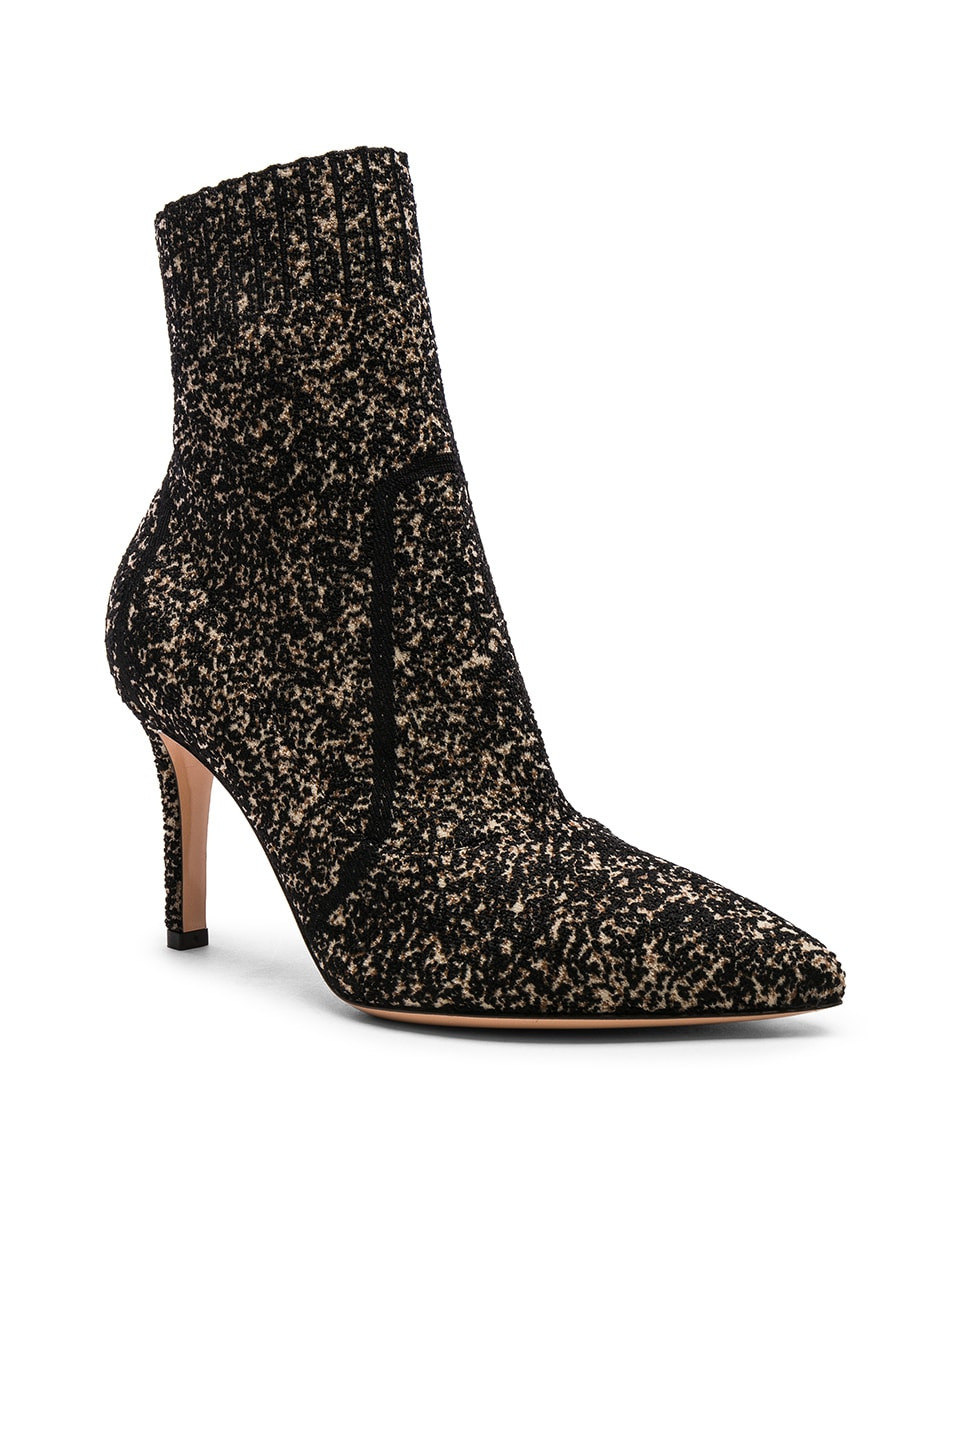 Image 2 of Gianvito Rossi Boucle Knit Katie Ankle Booties in Black & Bisque